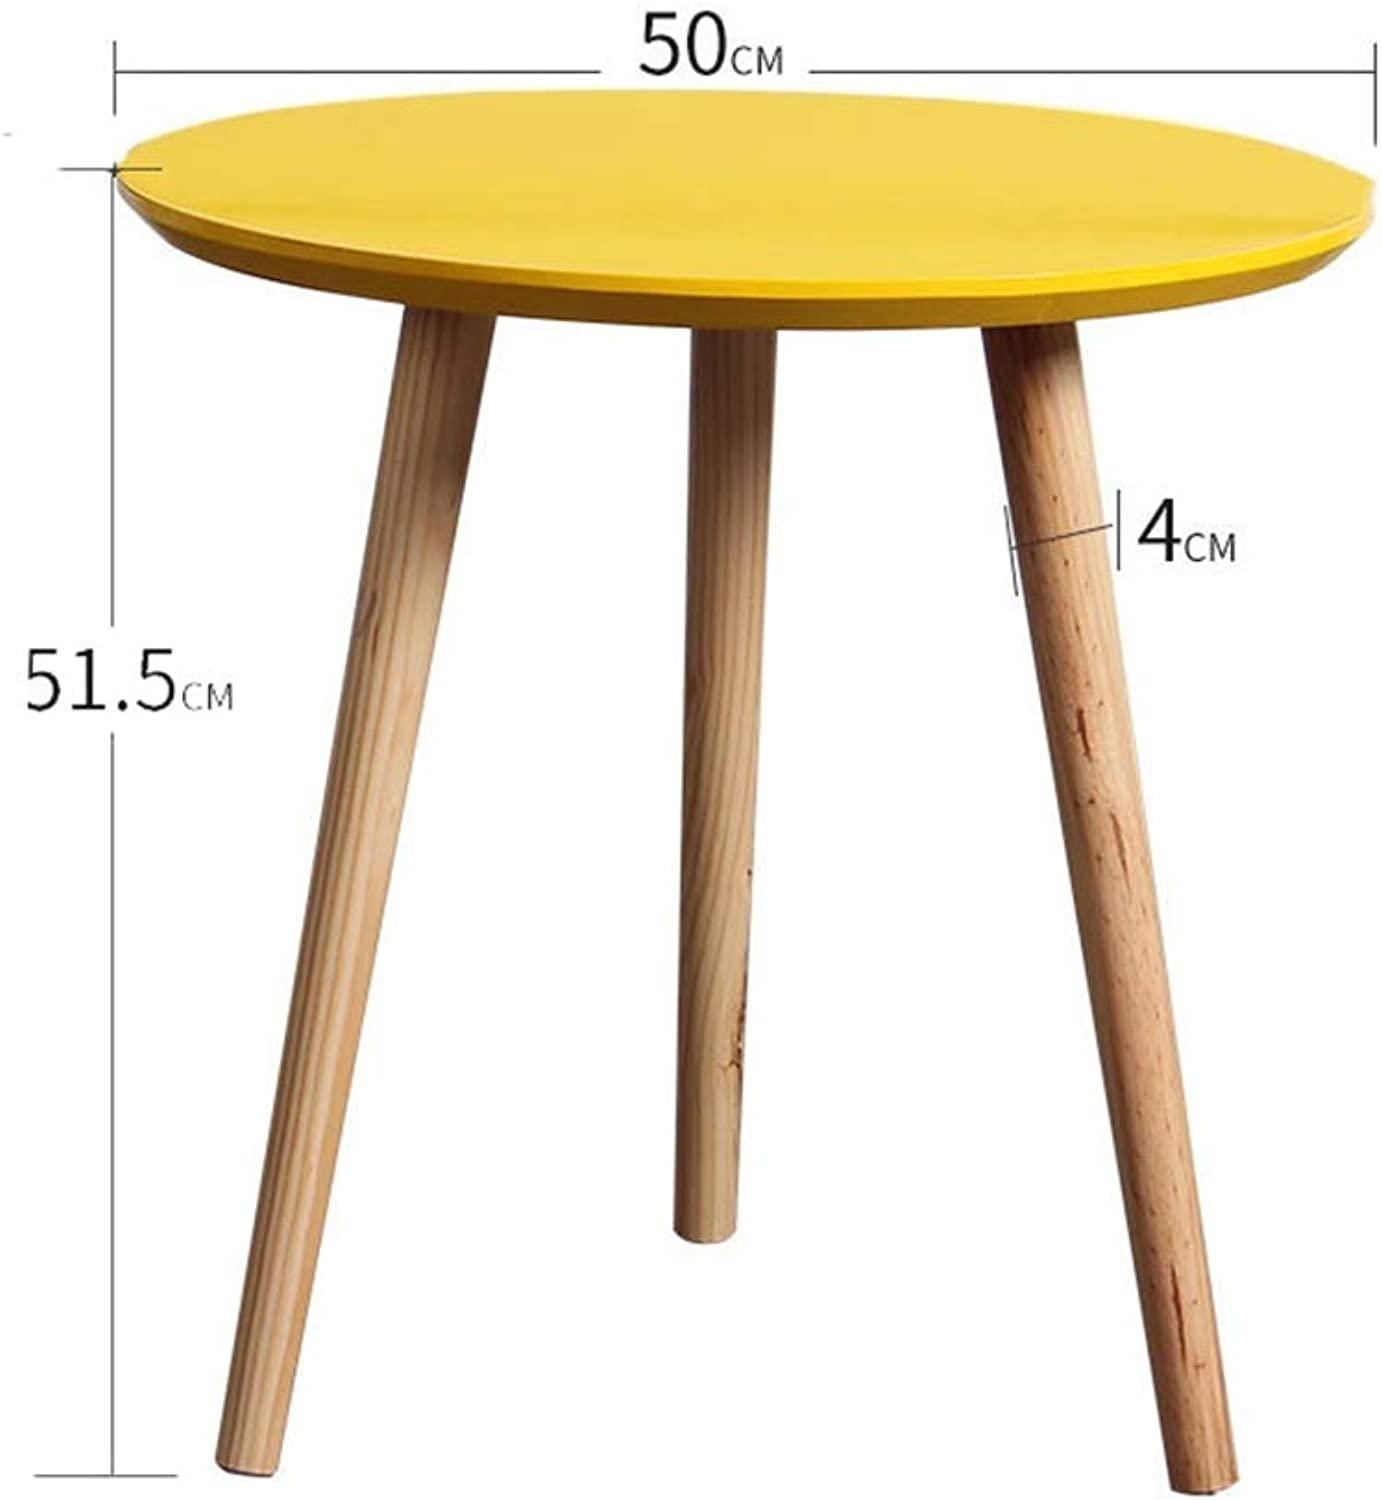 ZHAOYONGLI Tables,Coffee Tables Coffee Tables Nesting Coffees End Tables Modern Decor Side Table Triangle Occasional Stand Tea Table for Living Room Home and Office (color   50  51.5CM Yellow)